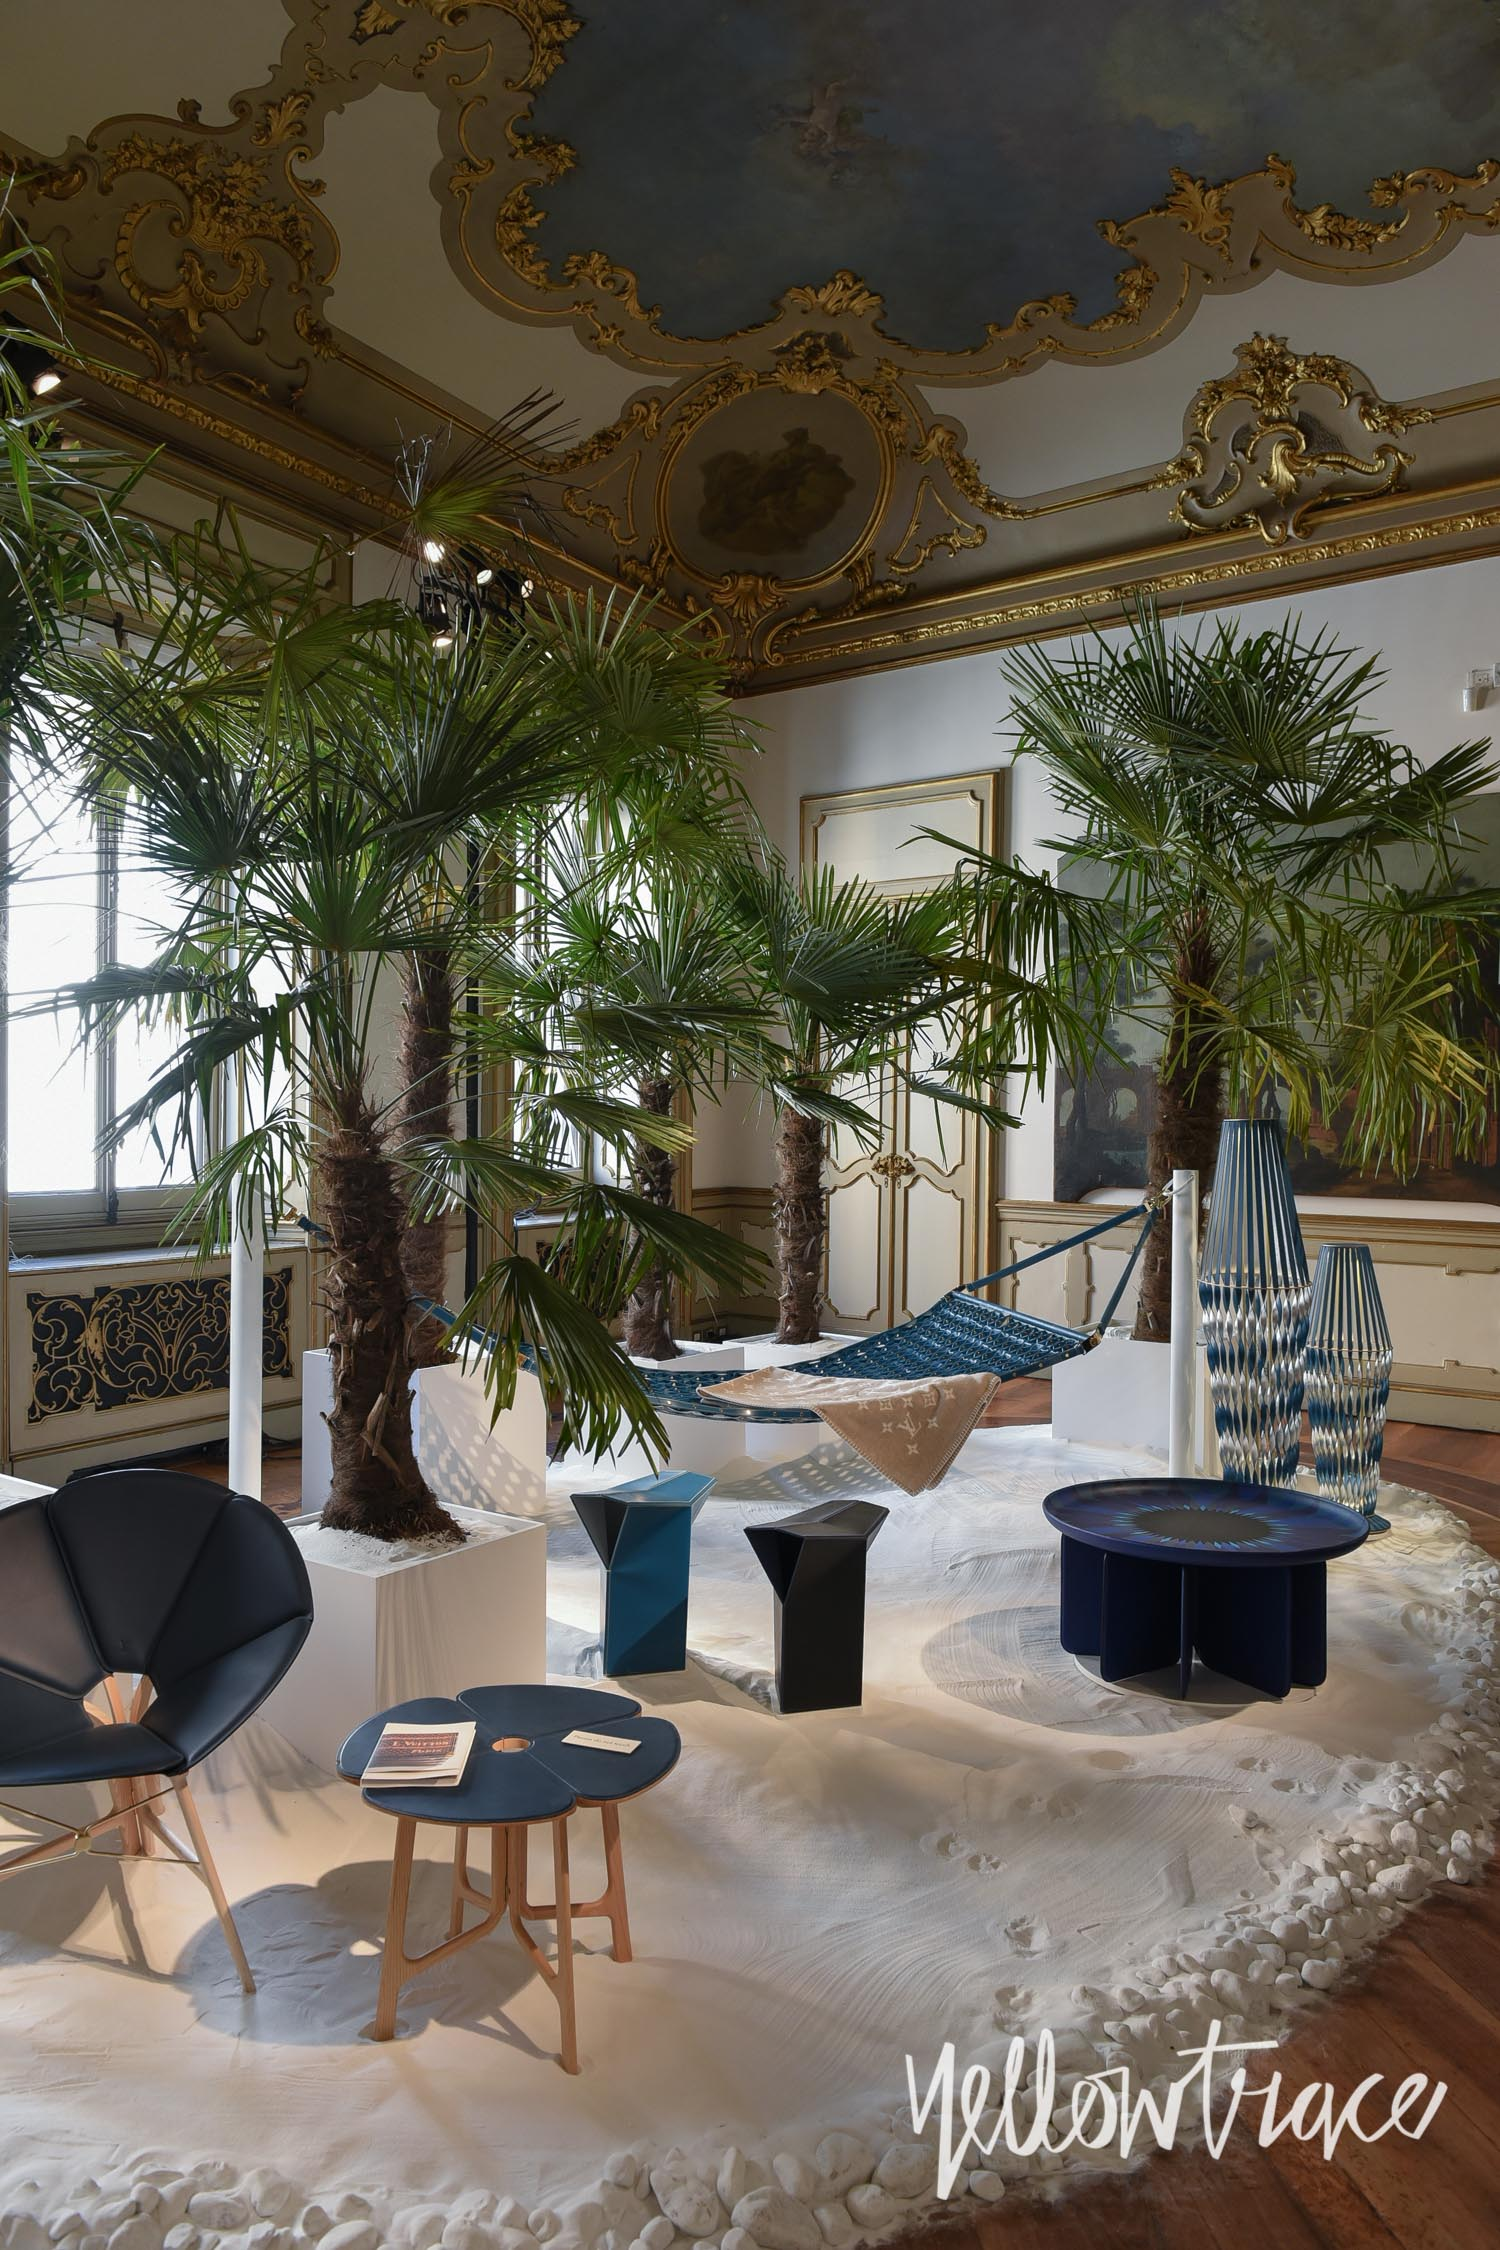 Milan Design Week 2017 Highlights, Louis Vuitton's Objet Nomades at Palazzo Bocconi, Photo © Nick Hughes | #Milantrace2017